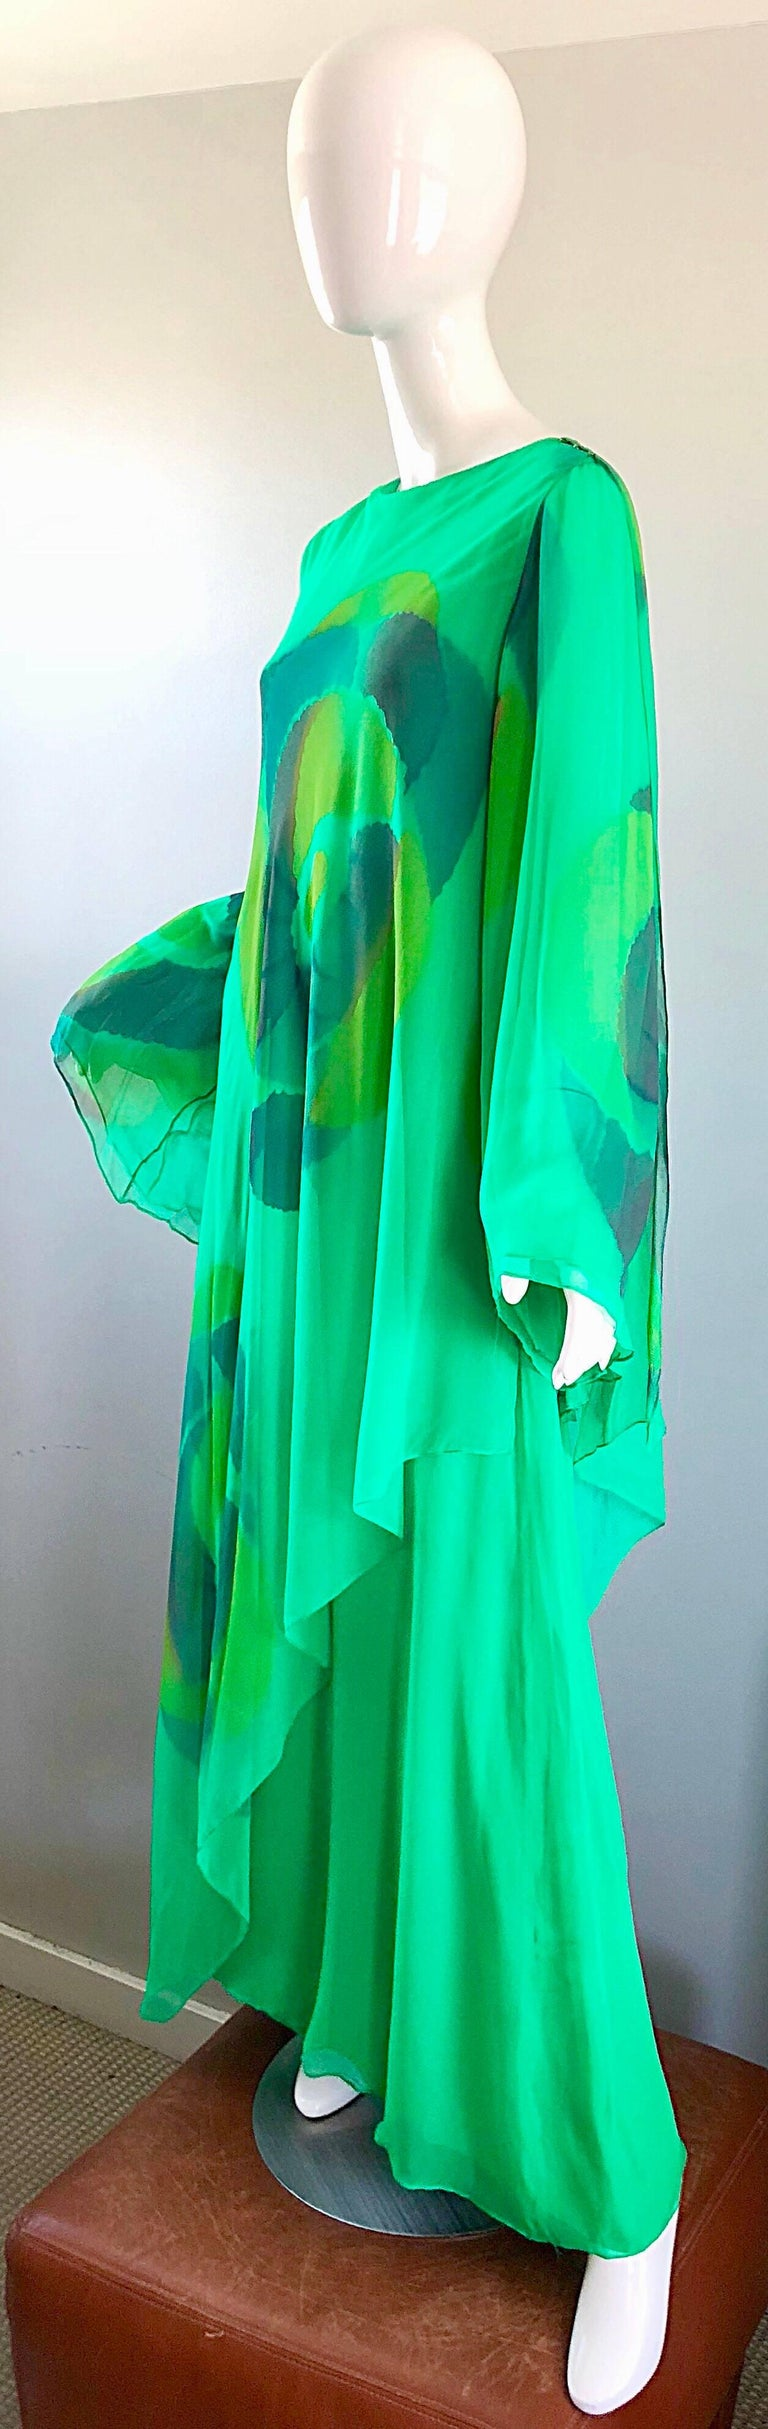 Vintage Travillia Couture 1970s Hand Painted Kelly Green Silk Chiffon 70s Gown In Excellent Condition For Sale In Chicago, IL